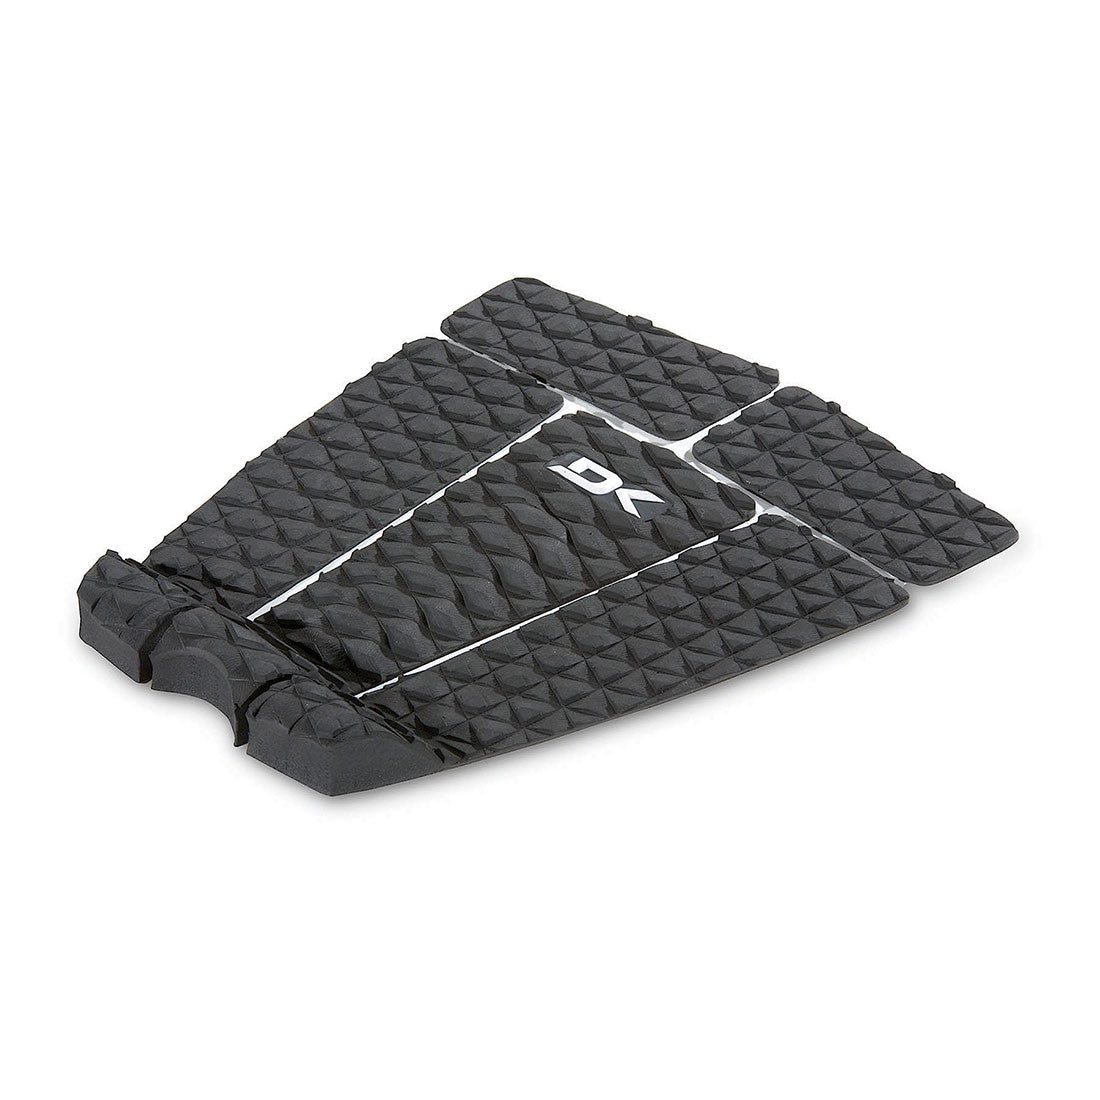 Dakine Bruce Irons Surfboard Traction Pad